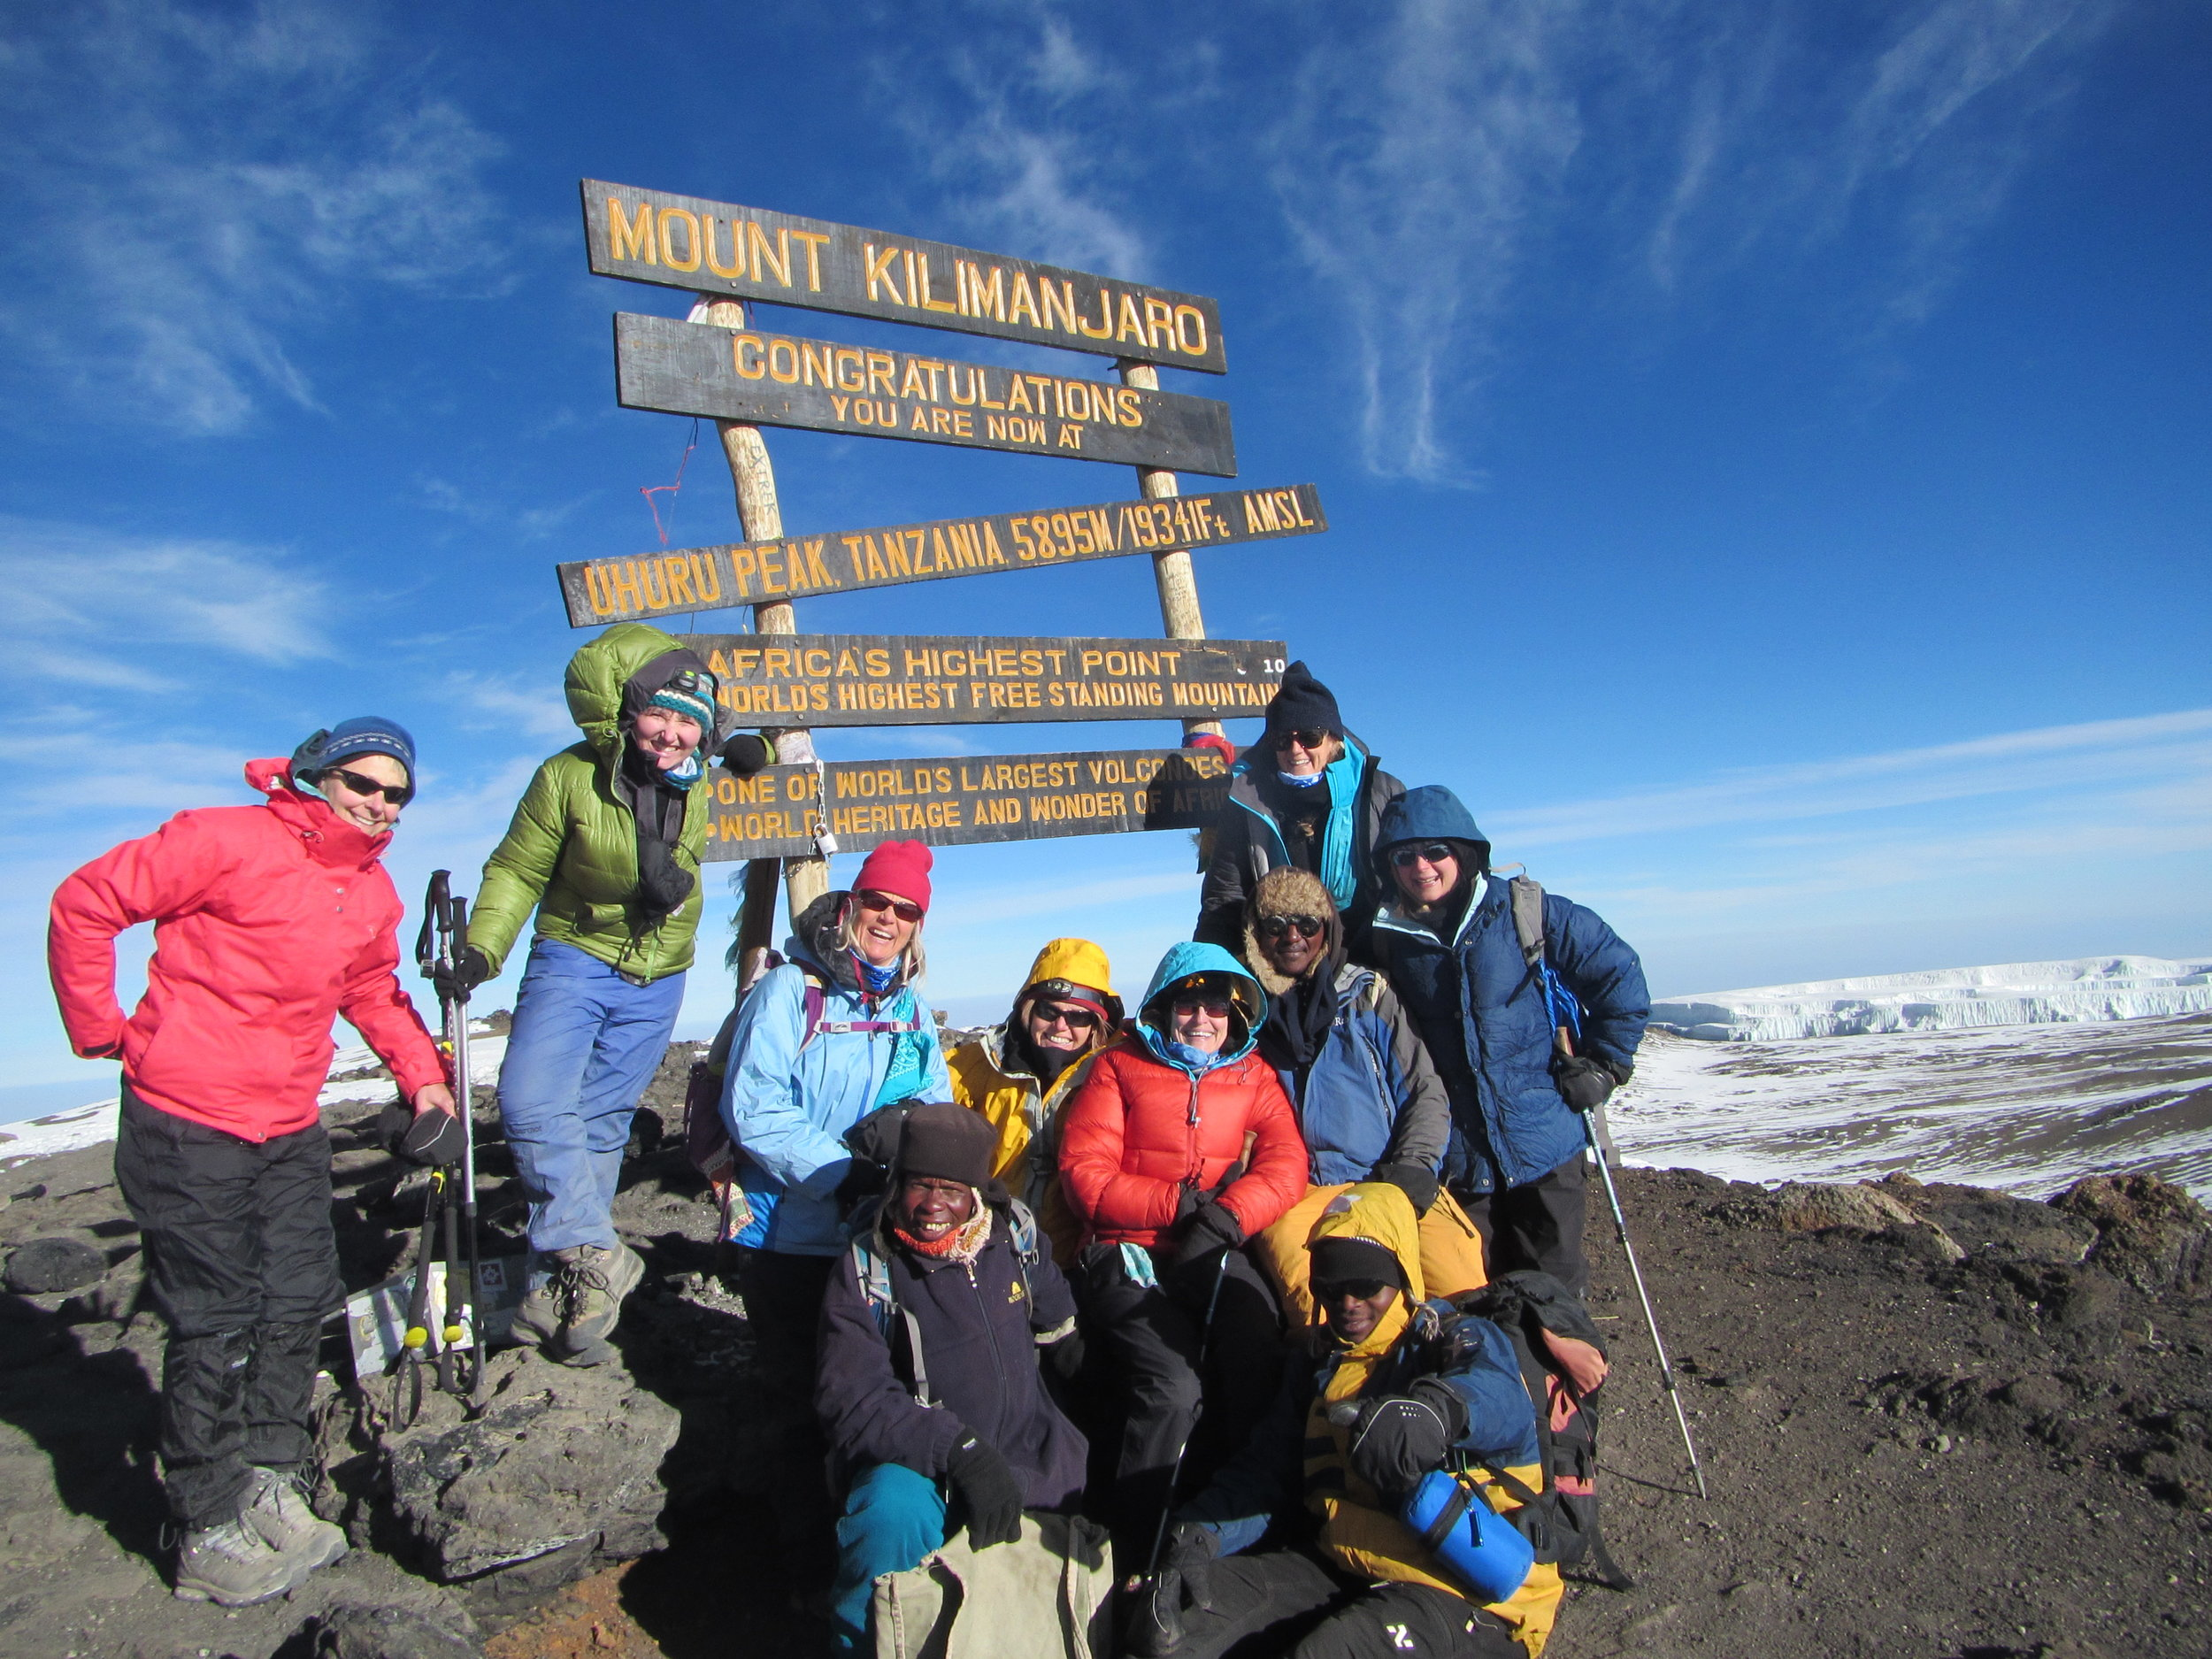 Hiking Mount Kilimanjaro: Day 6 We reached The Roof of Africa, Uhuru Peak!